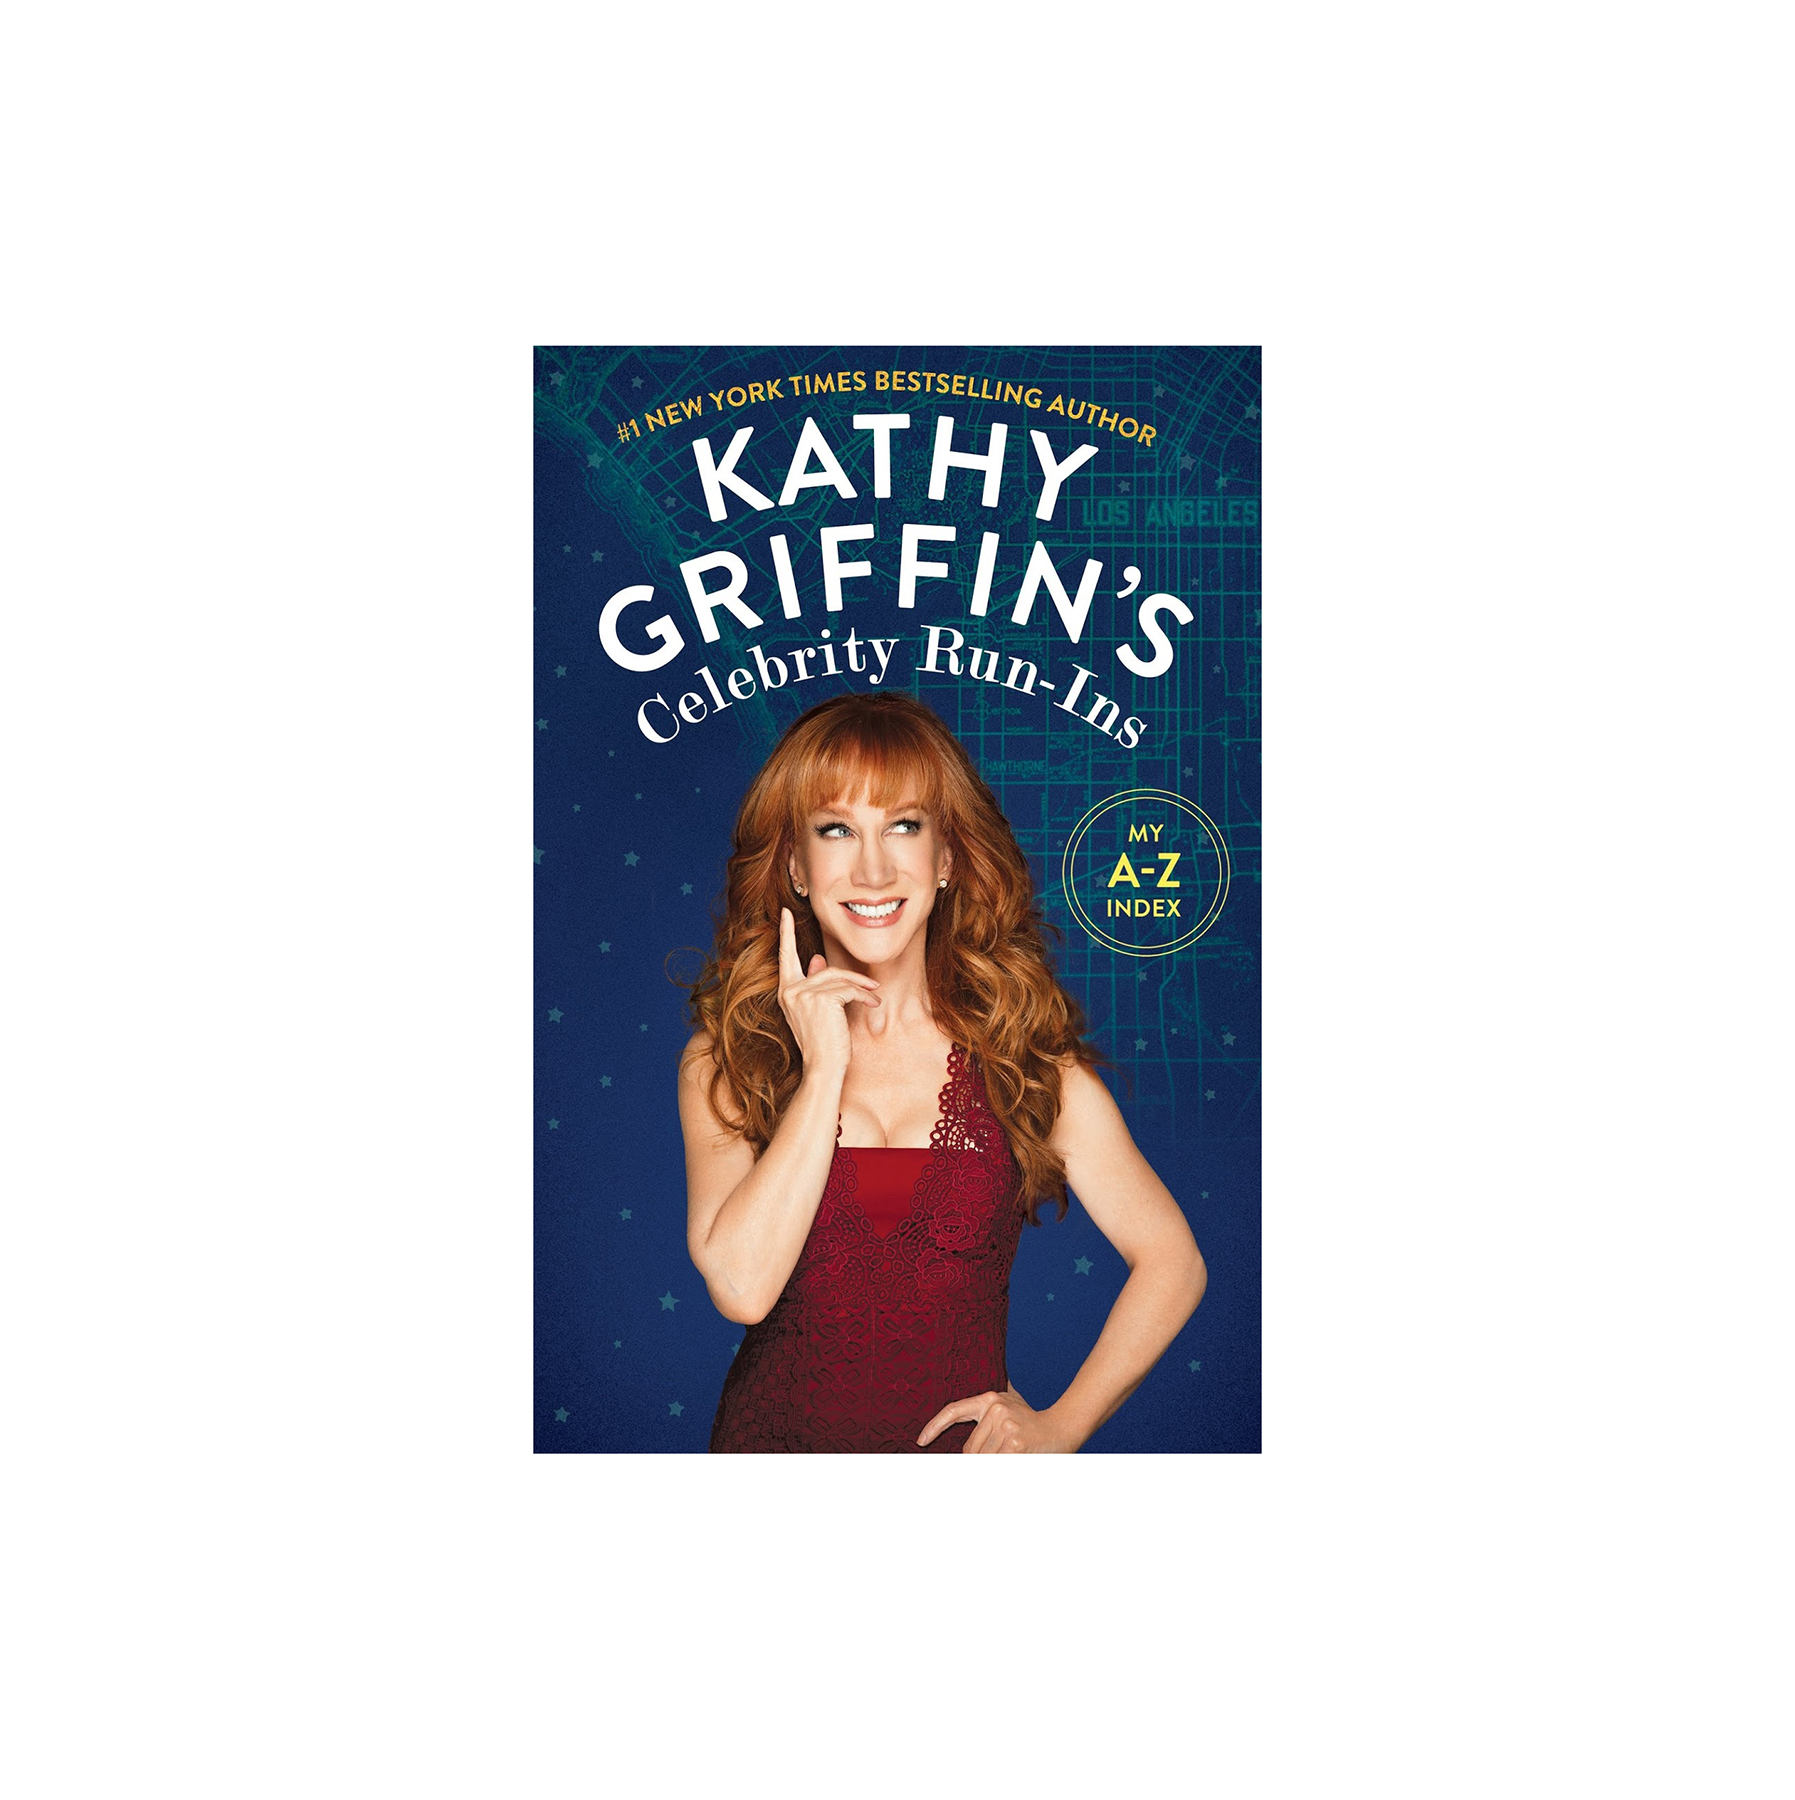 Kathy Griffin's Celebrity Run-Ins, by Kathy Griffin